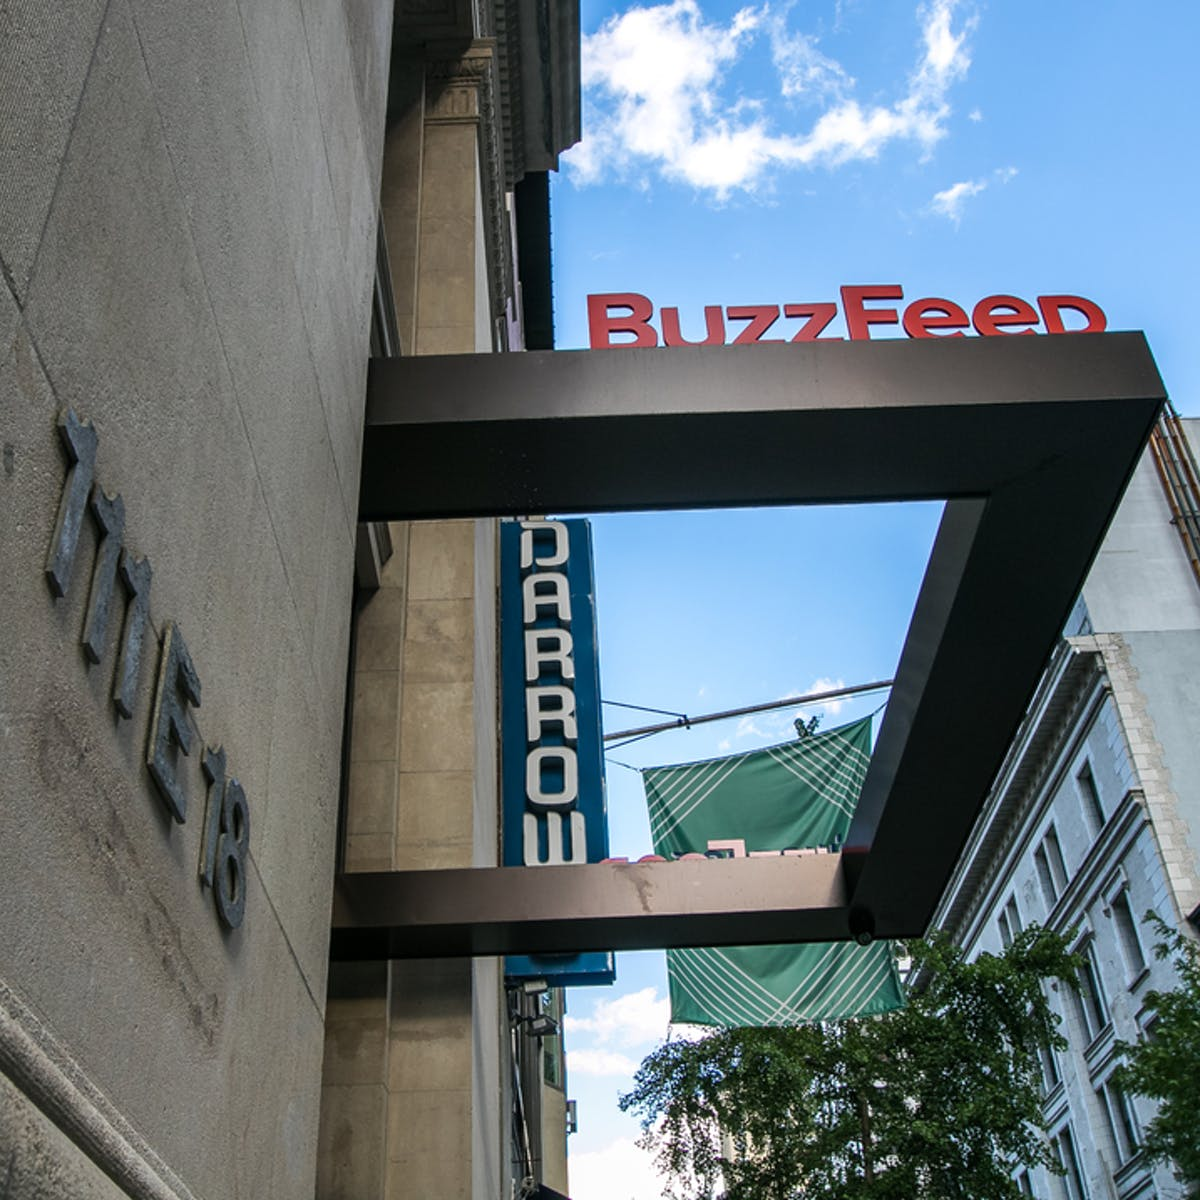 From cat gifs to serious political clout: Buzzfeed and the